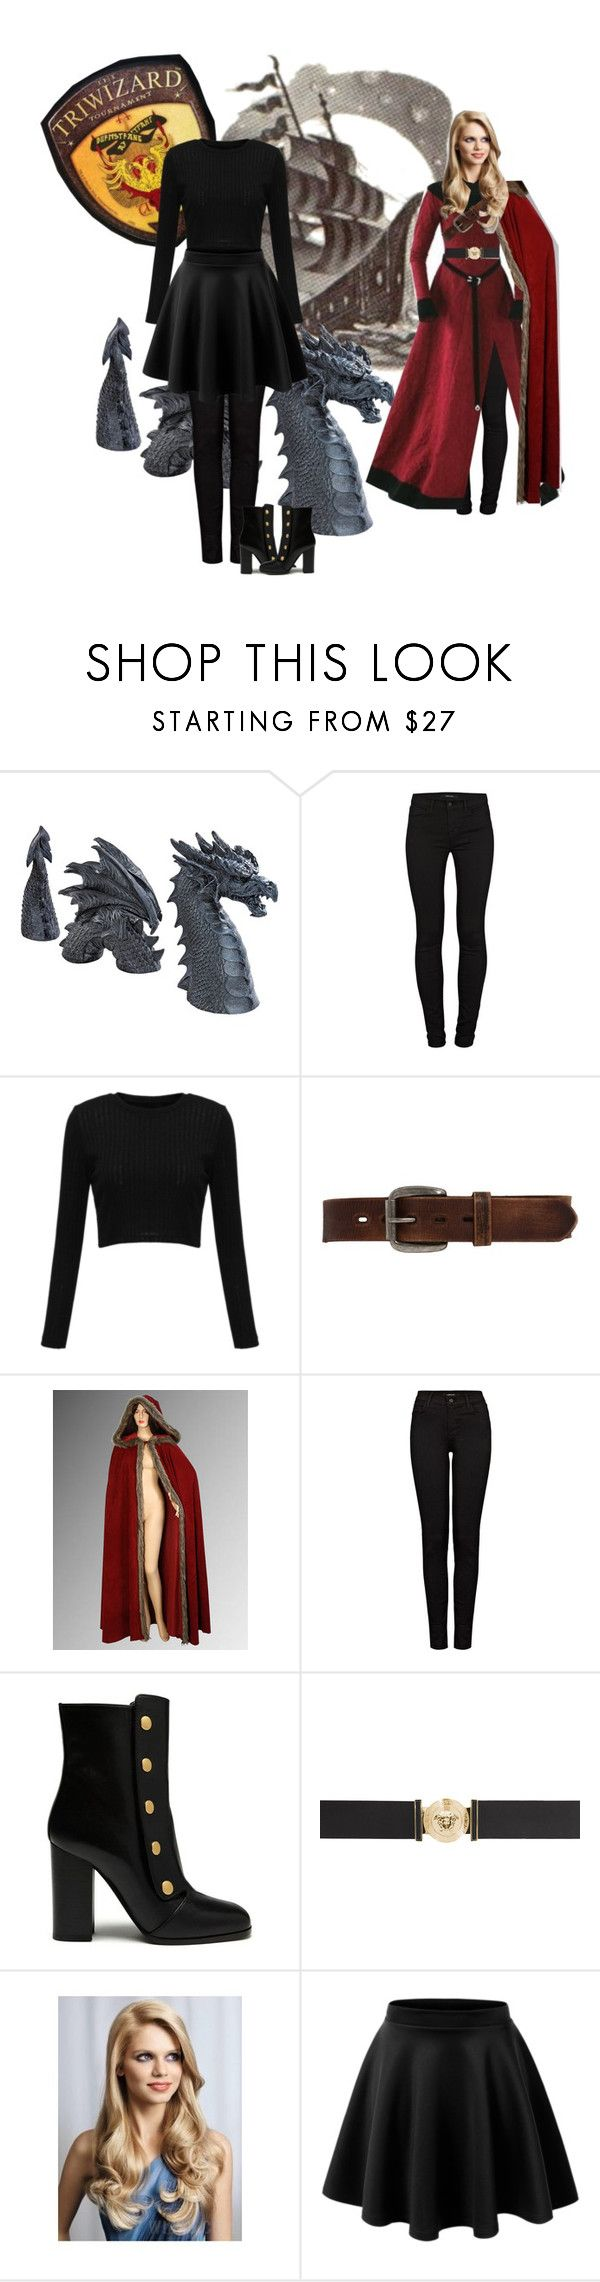 Durmstrang Female Uniform By Janie254 Liked On Polyvore Featuring J Brand Bed Sta Mulberry Versace And Hogwarts Clothes Design Women Perfect Clothing This female durmstrang student a witch who attended the durmstrang institute in the 1990s. pinterest